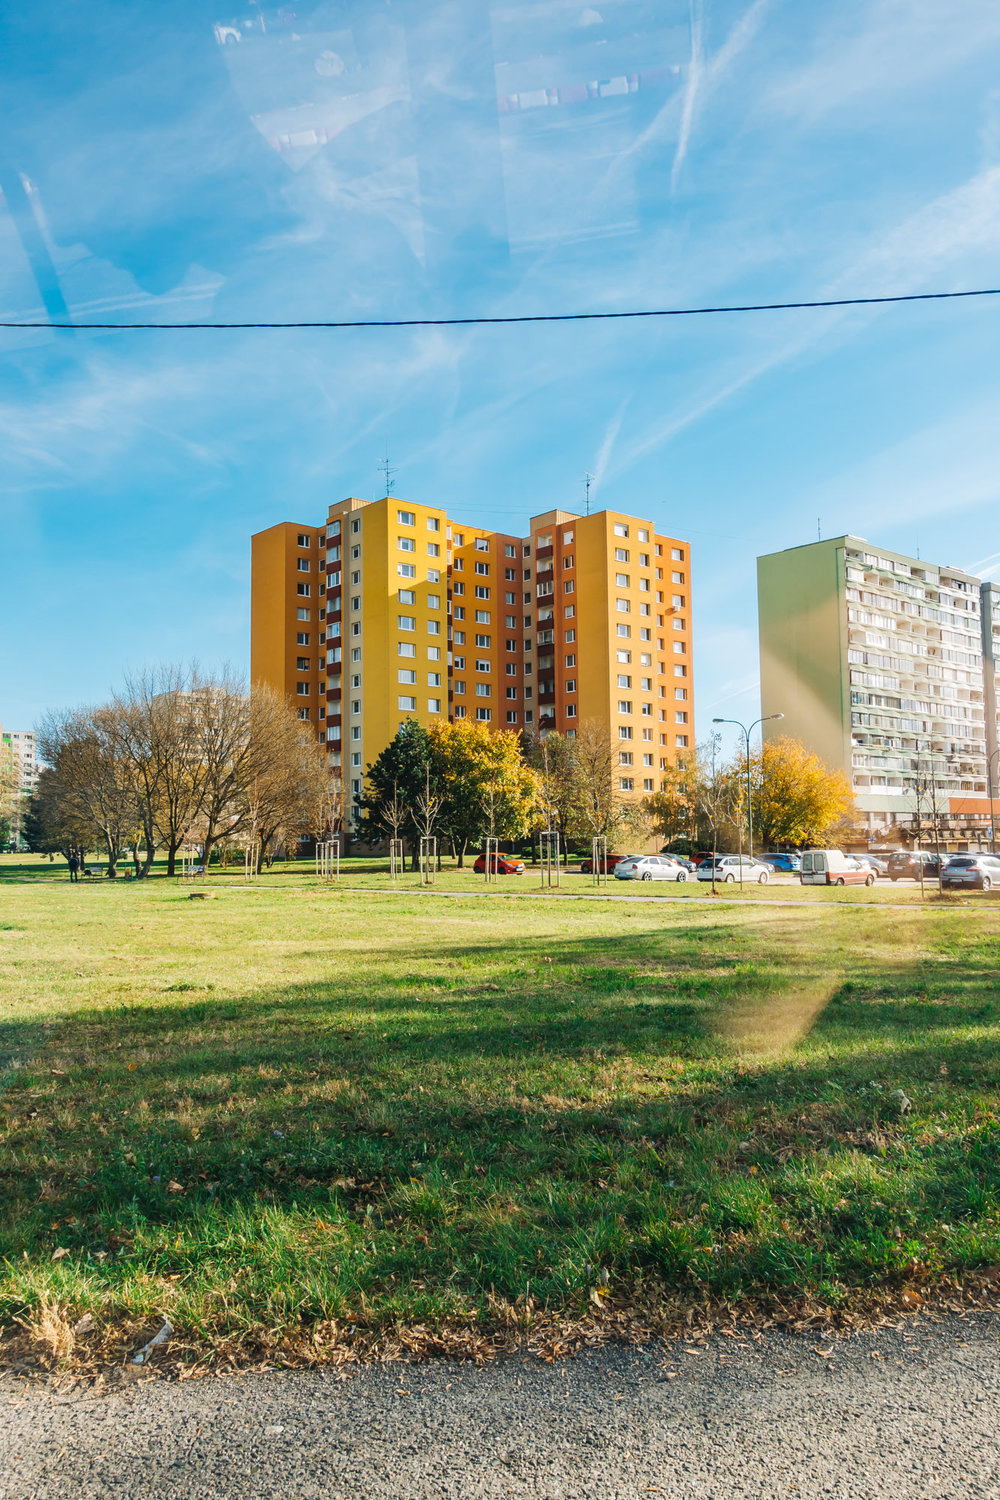 Petrzalka prefab building where Marec lives